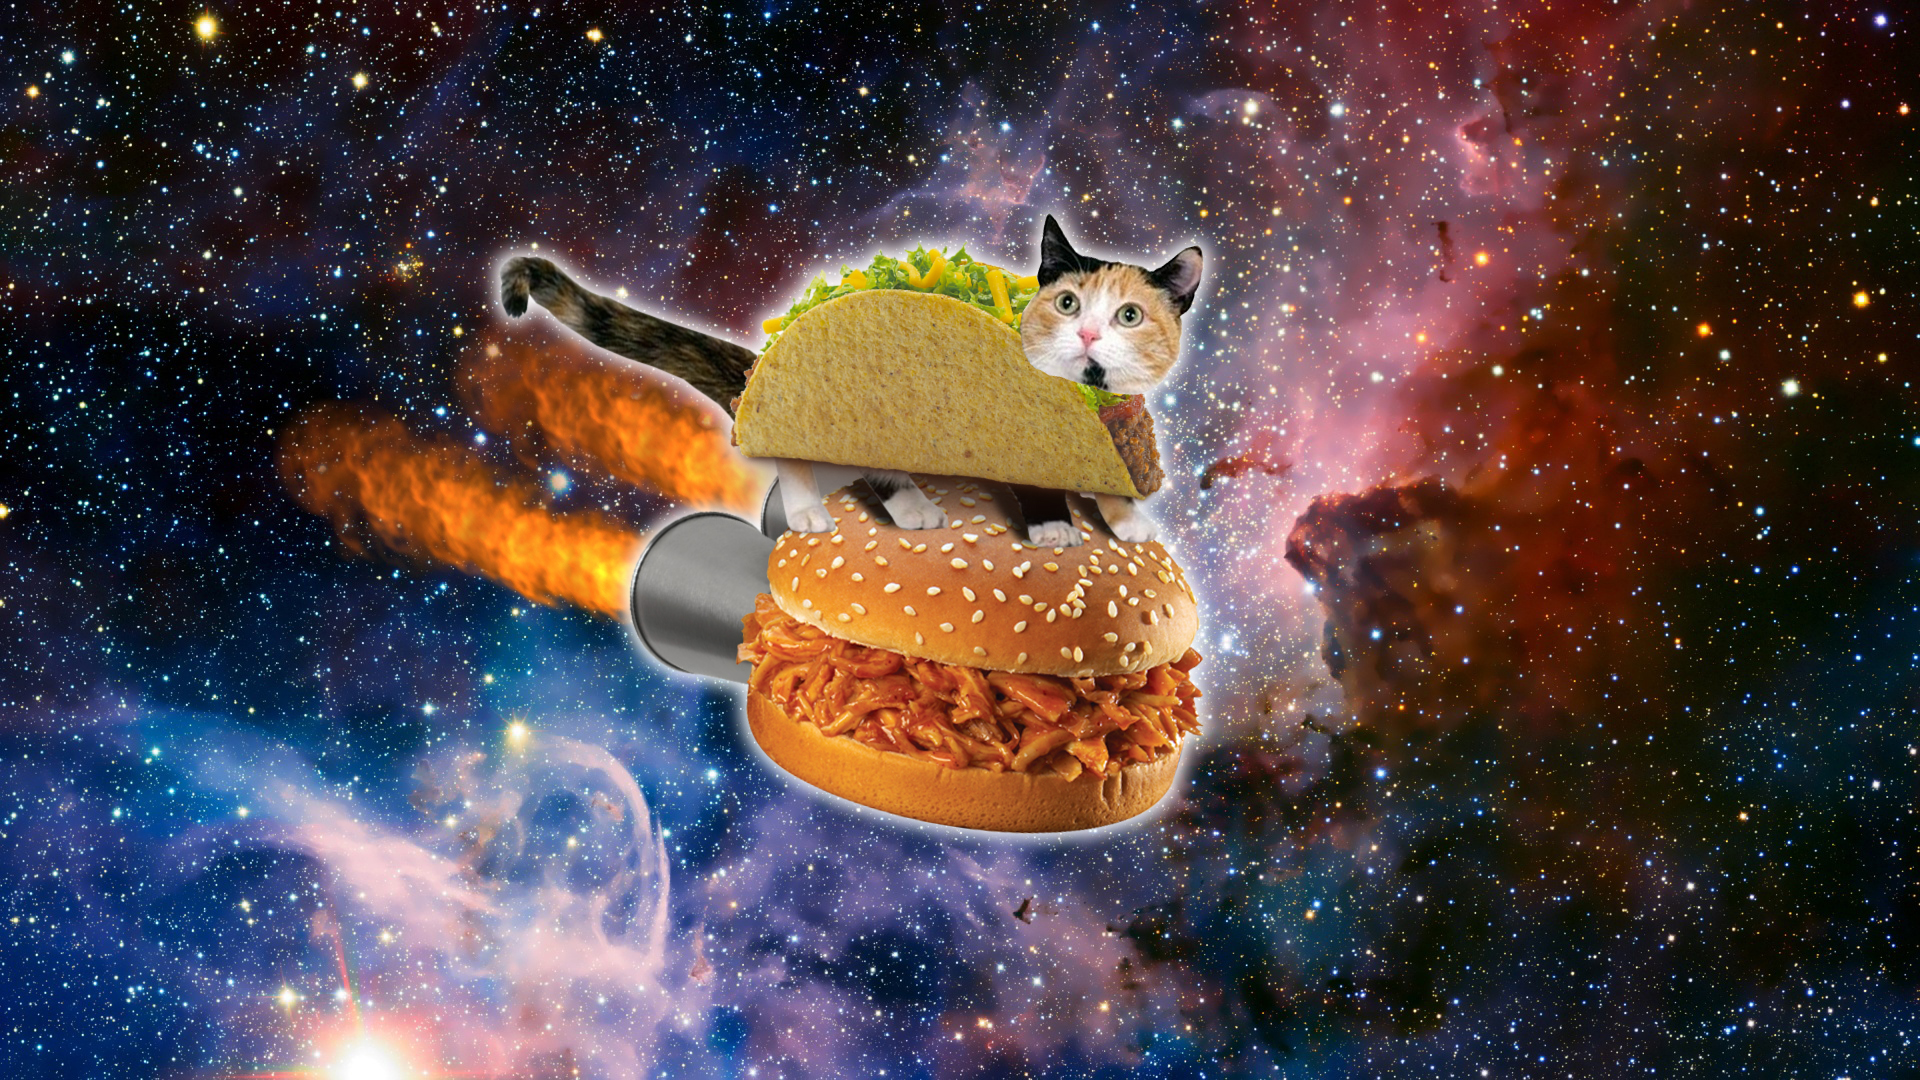 Taco Cat in Space by Jayro Jones 1920x1080